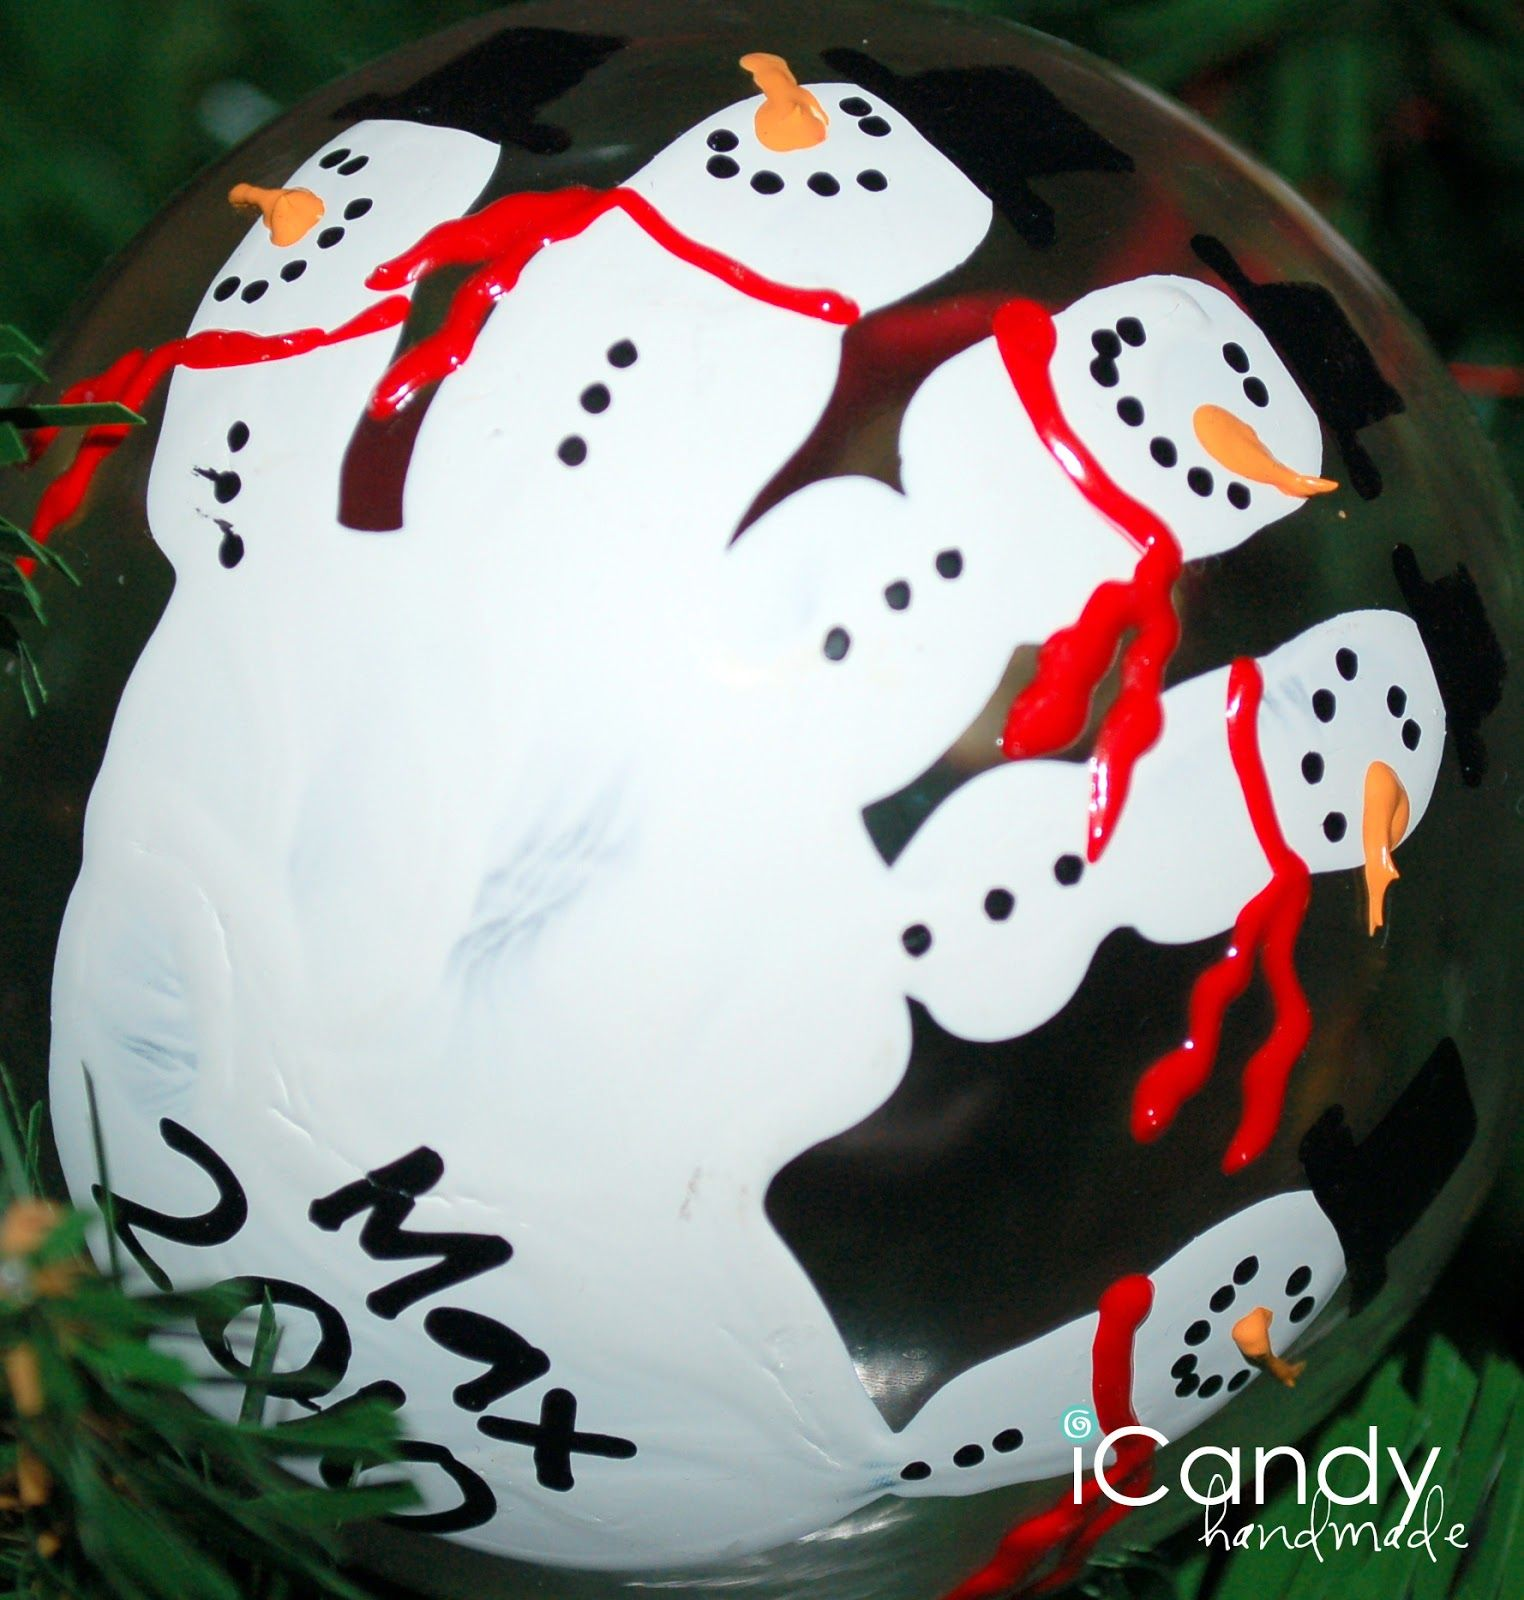 icandy handmade: (iCandy) Handful of Handmade Christmas Ornaments #bestgiftsforgrandparents